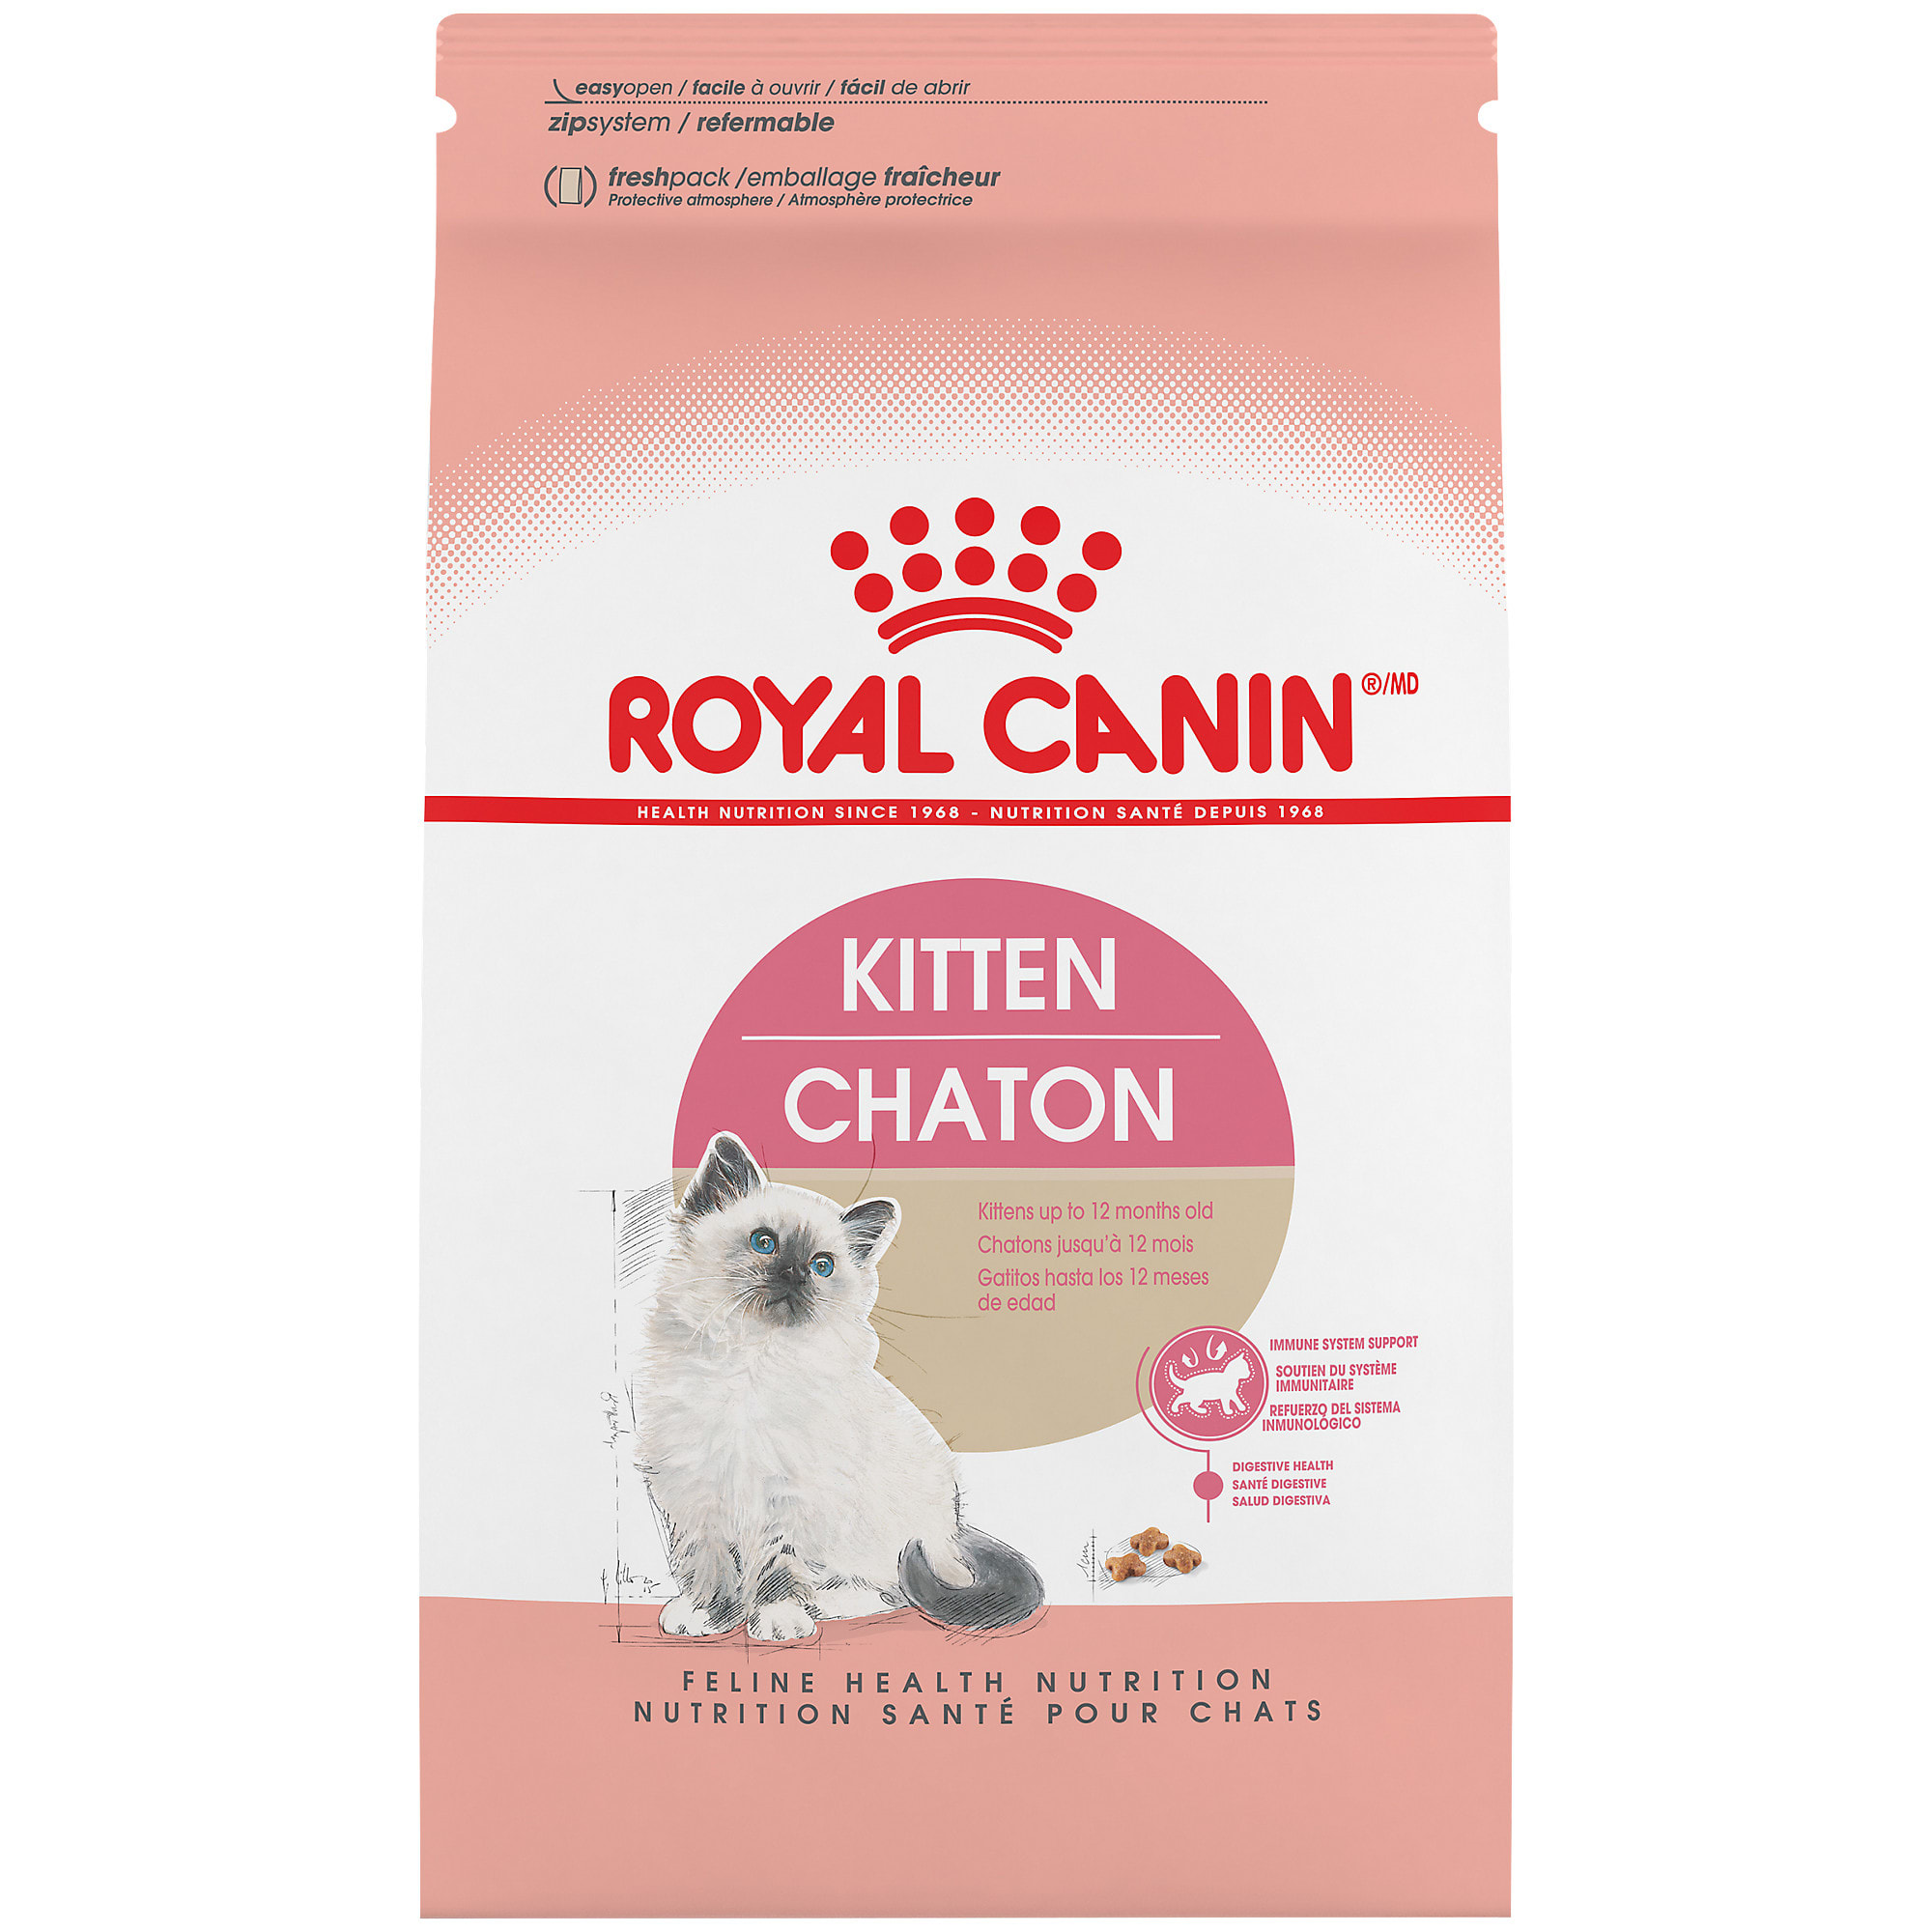 Royal Canin Feline Health Nutrition Dry Food For Young Kittens 15 Lbs Petco